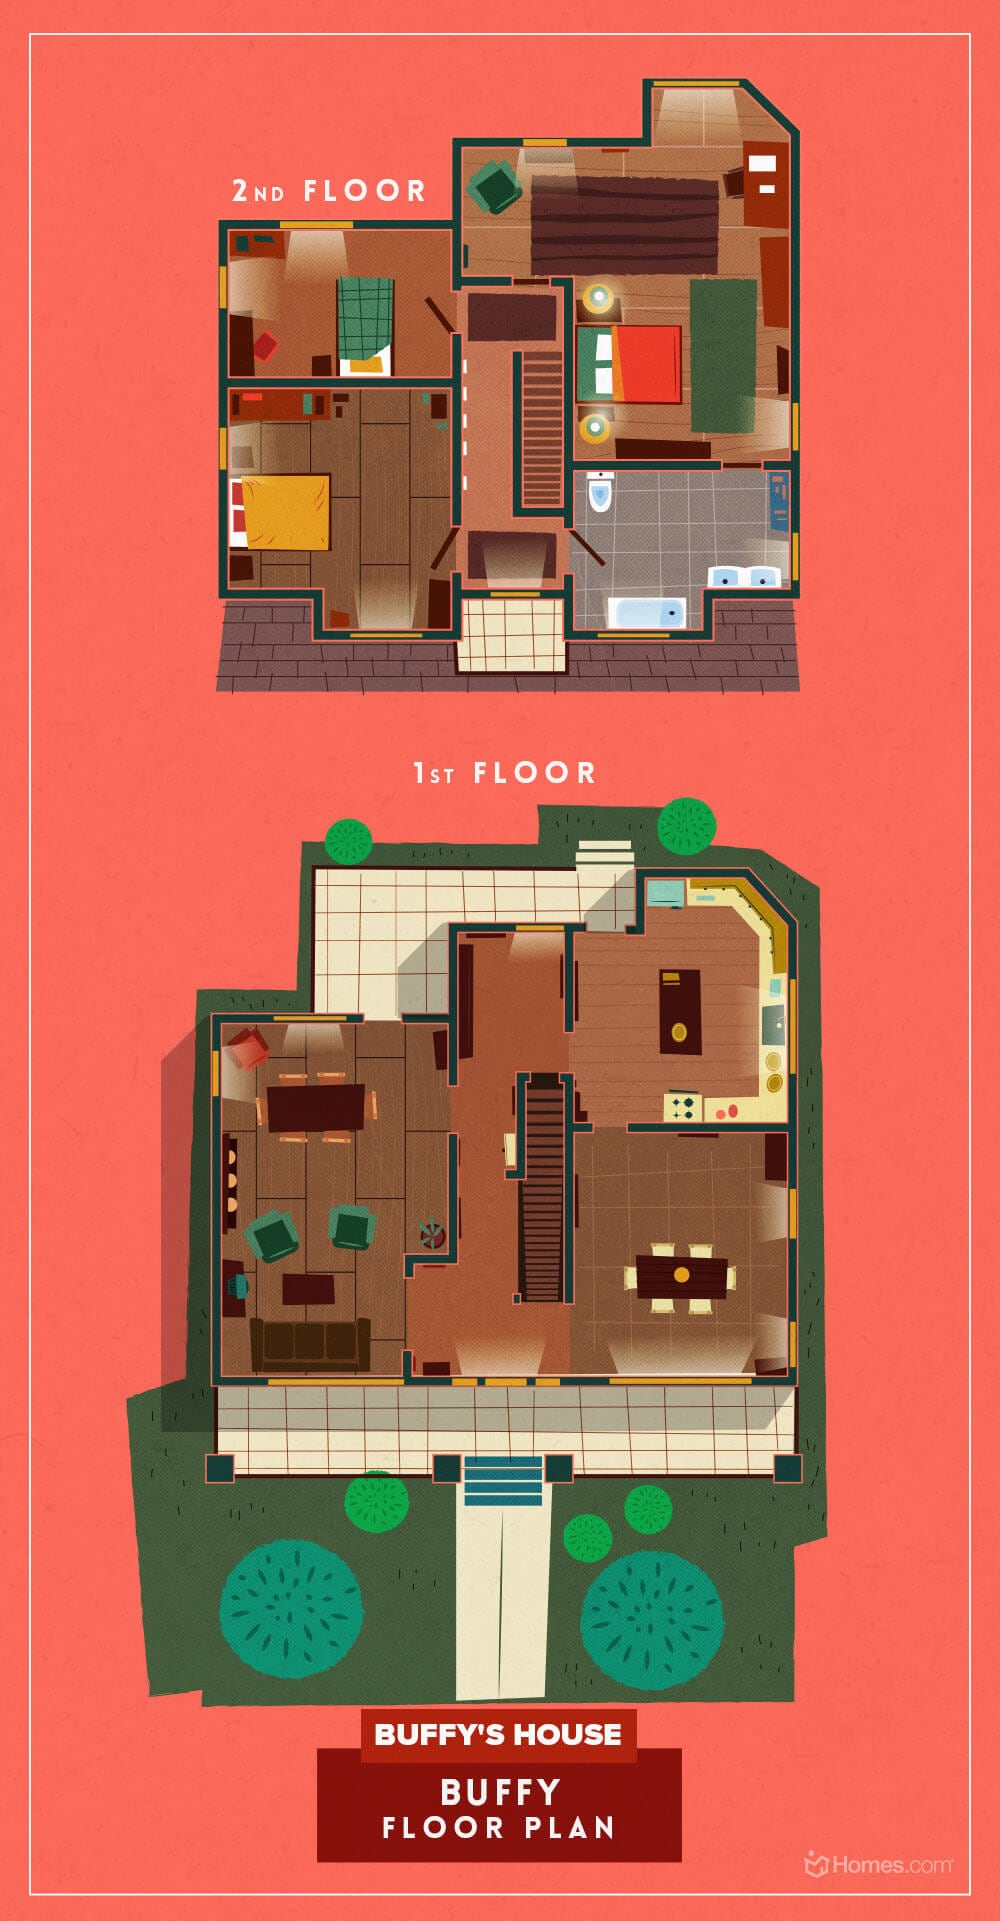 home-floor-plans-illustrations-2